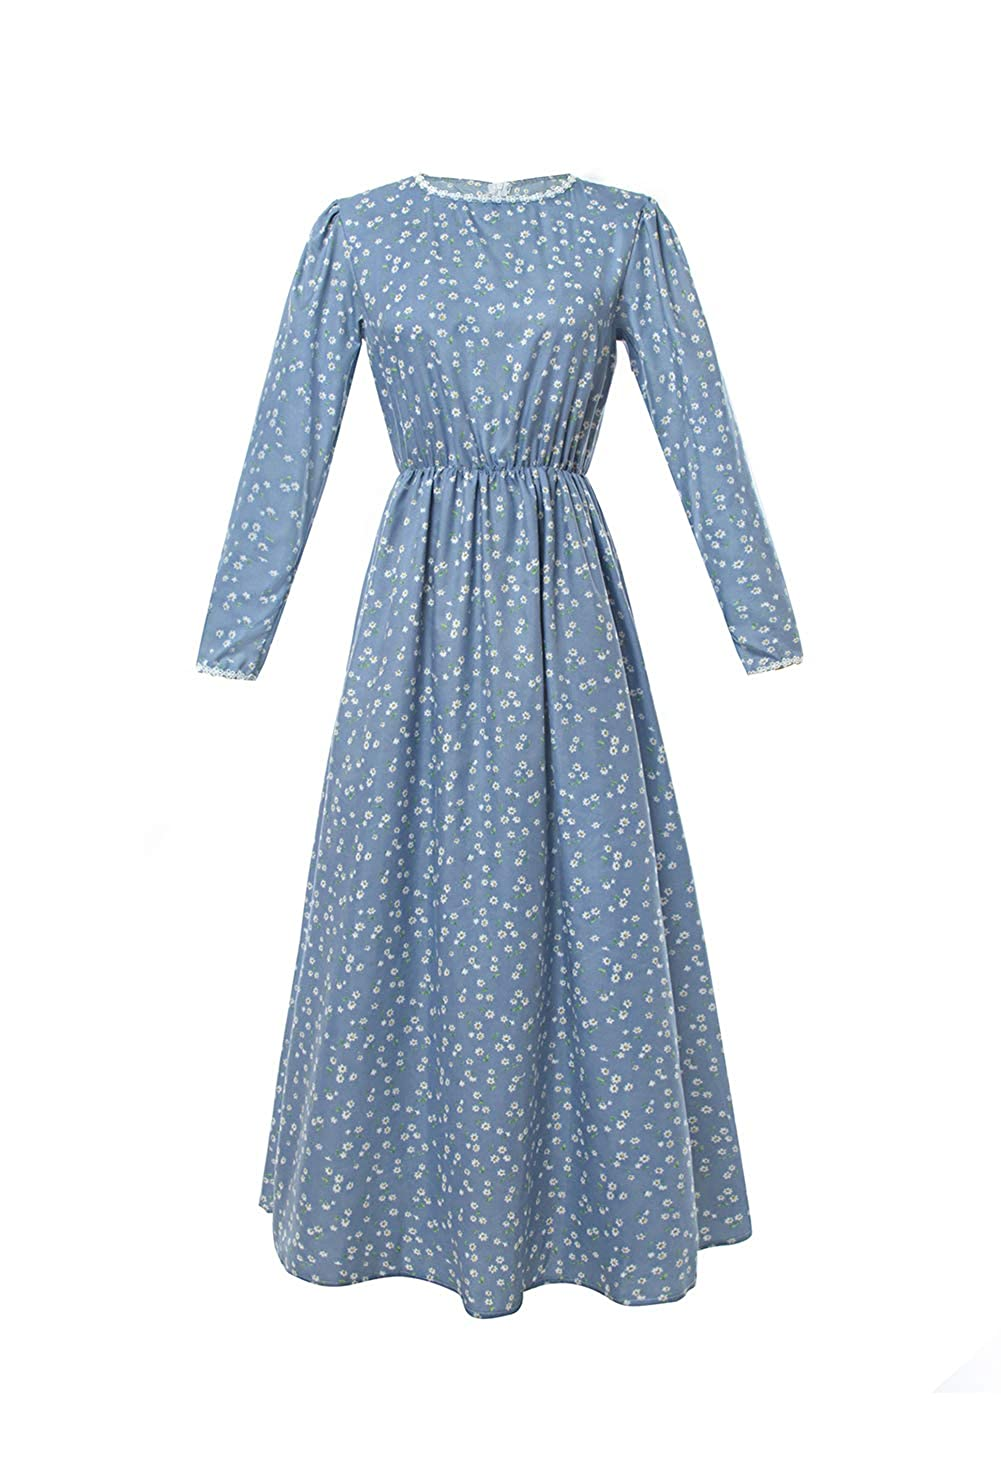 1900 -1910s Edwardian Fashion, Clothing & Costumes 1890-1915 Pioneer Women Costume Floral Prairie Dress Deluxe Colonial Dress Laura Ingalls Costume $35.99 AT vintagedancer.com